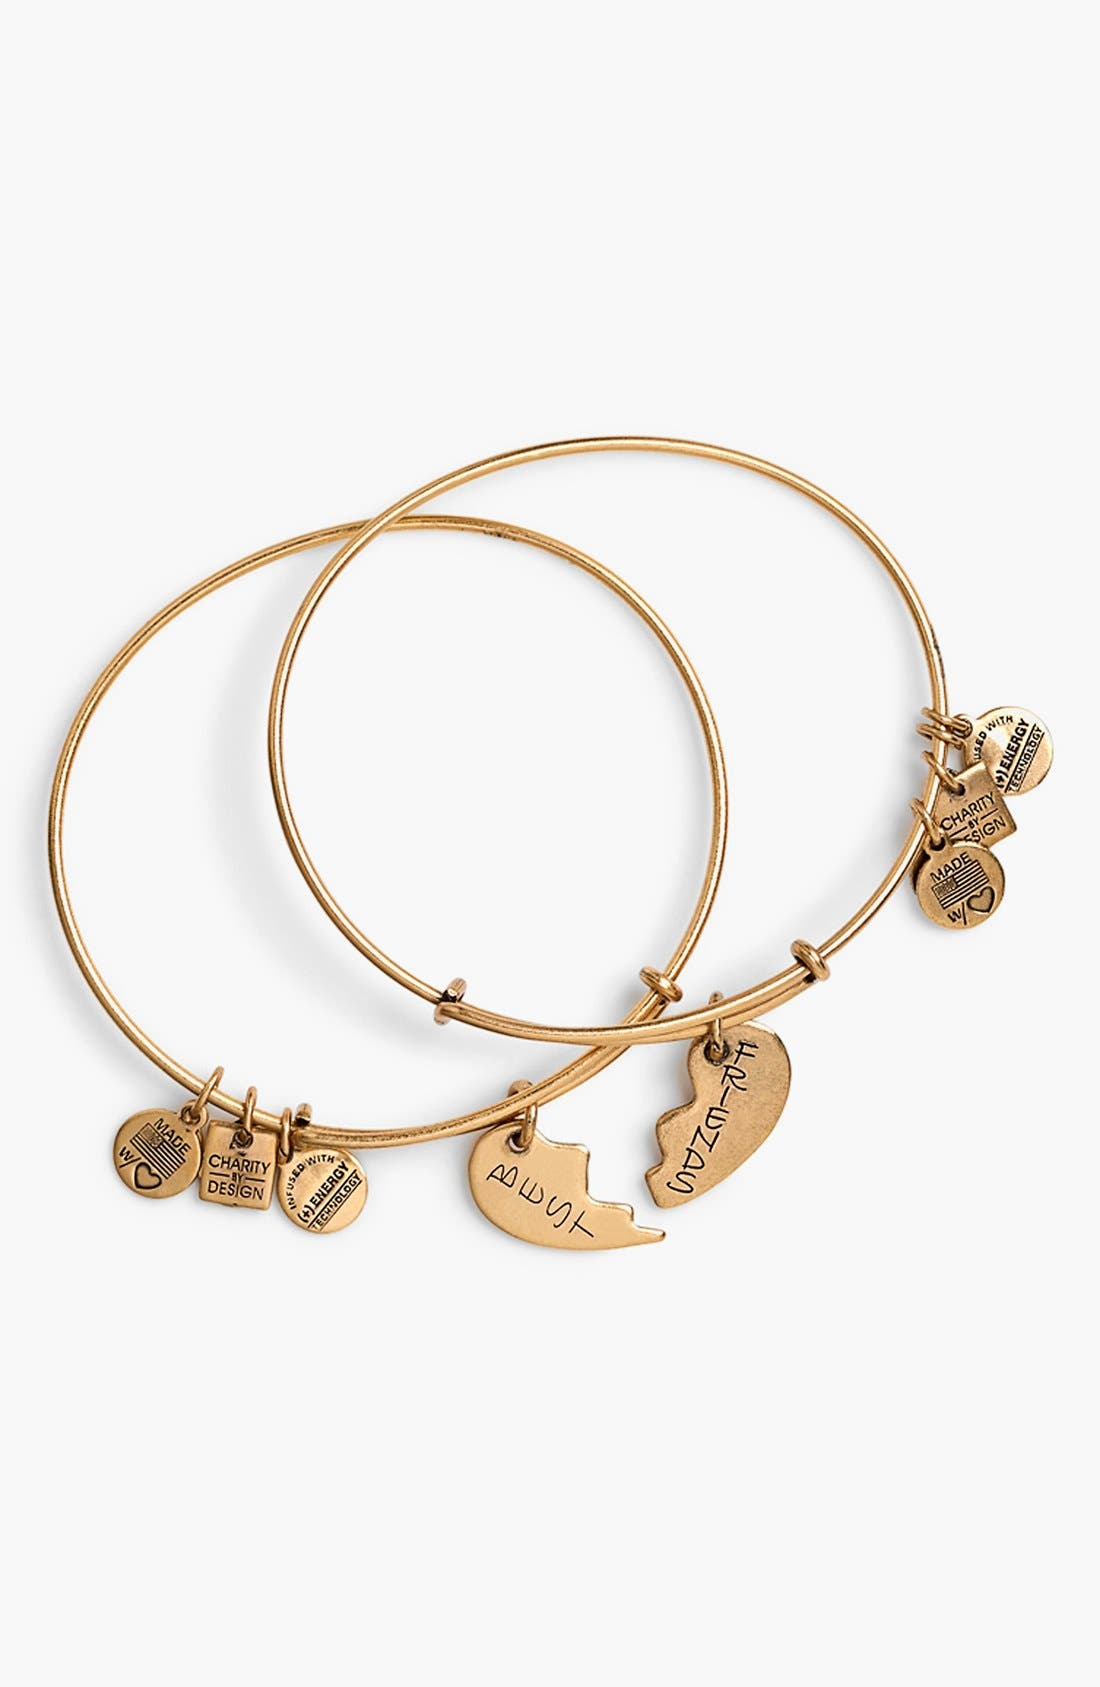 'Charity by Design - Best Friends' Adjustable Wire Bangles,                         Main,                         color, 710